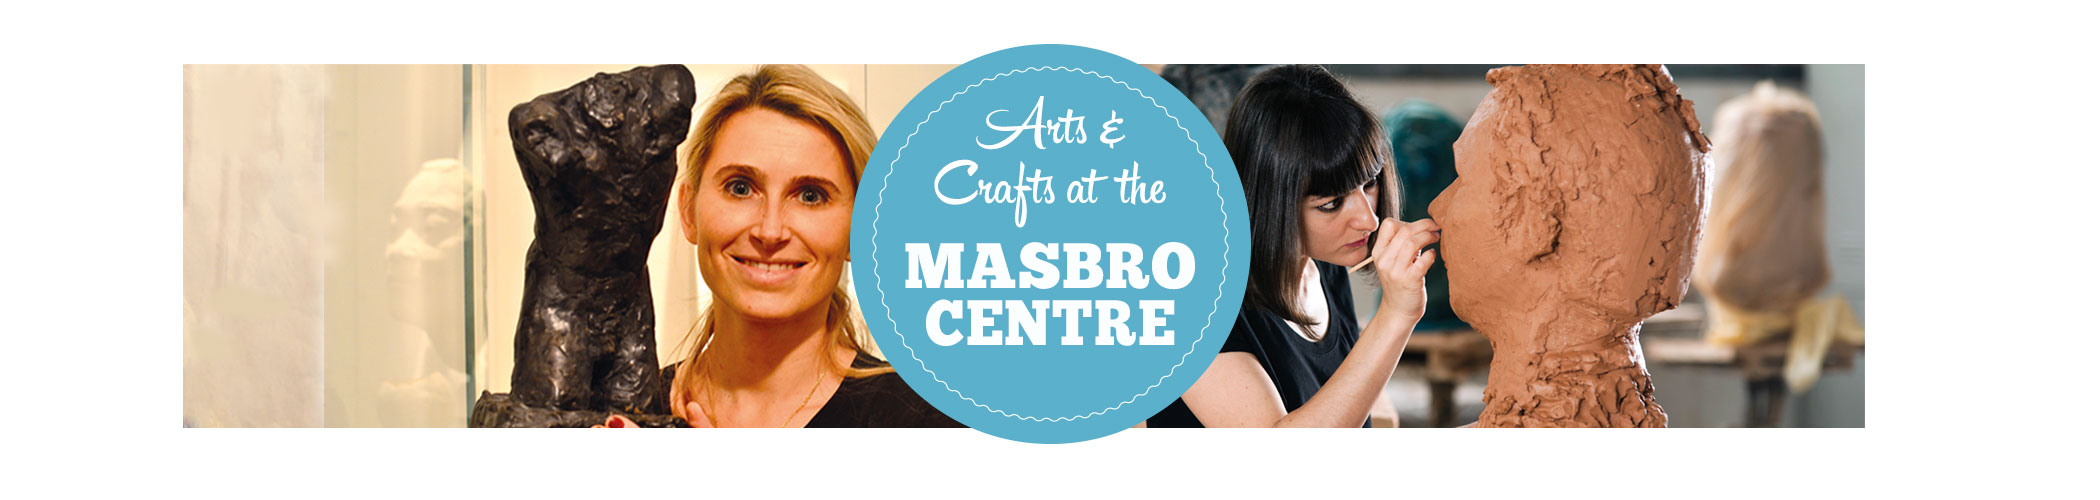 Masbro Arts and Crafts page iphone banner